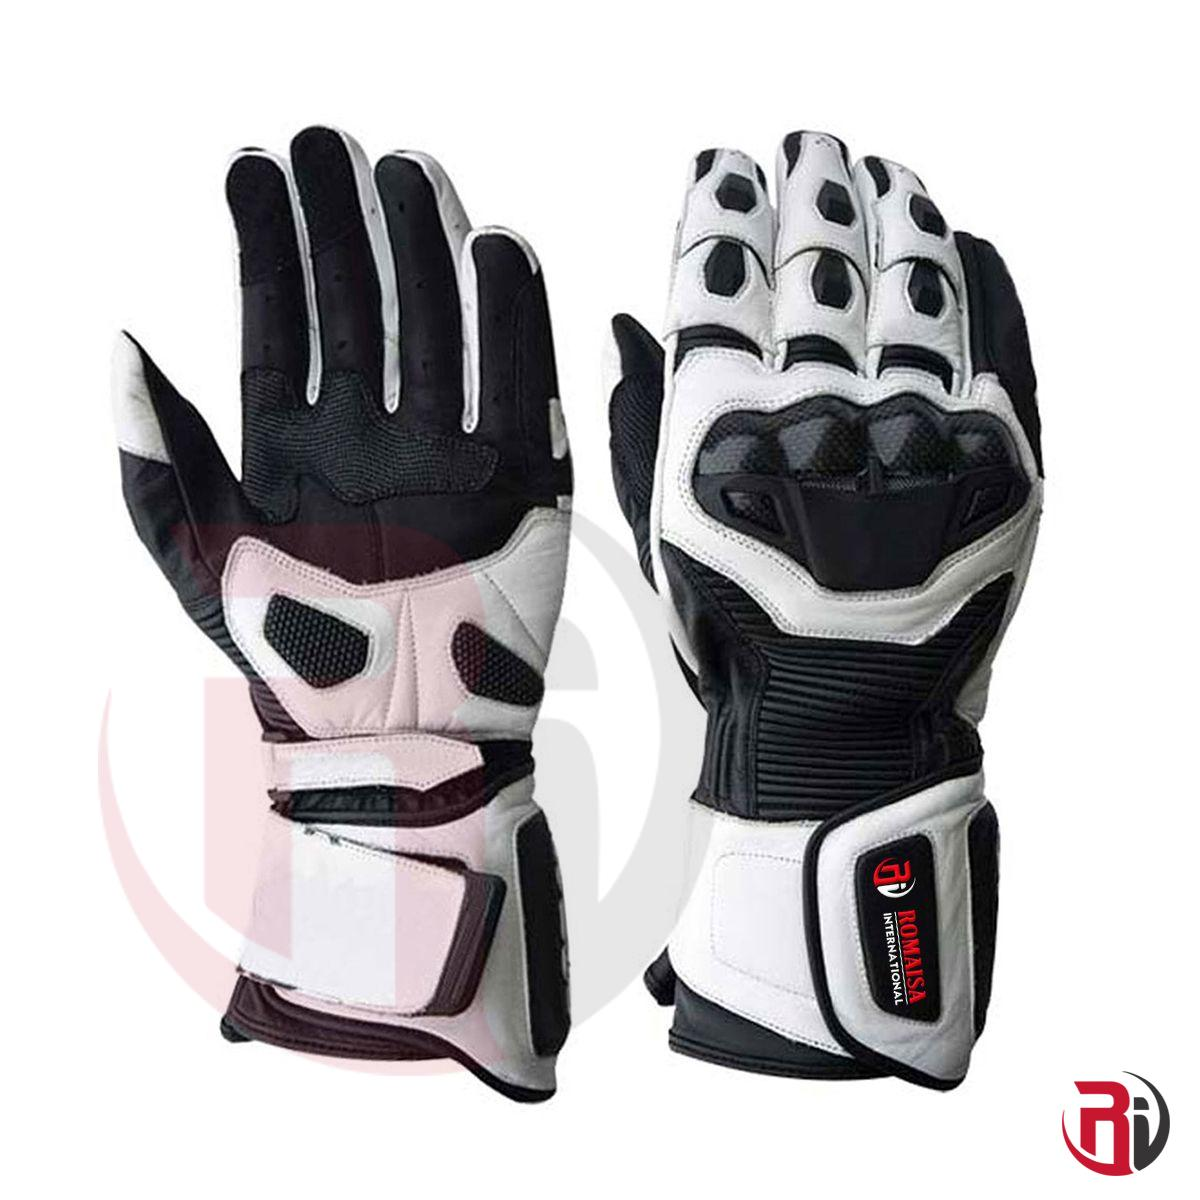 Motorbike Gloves, RI-1504